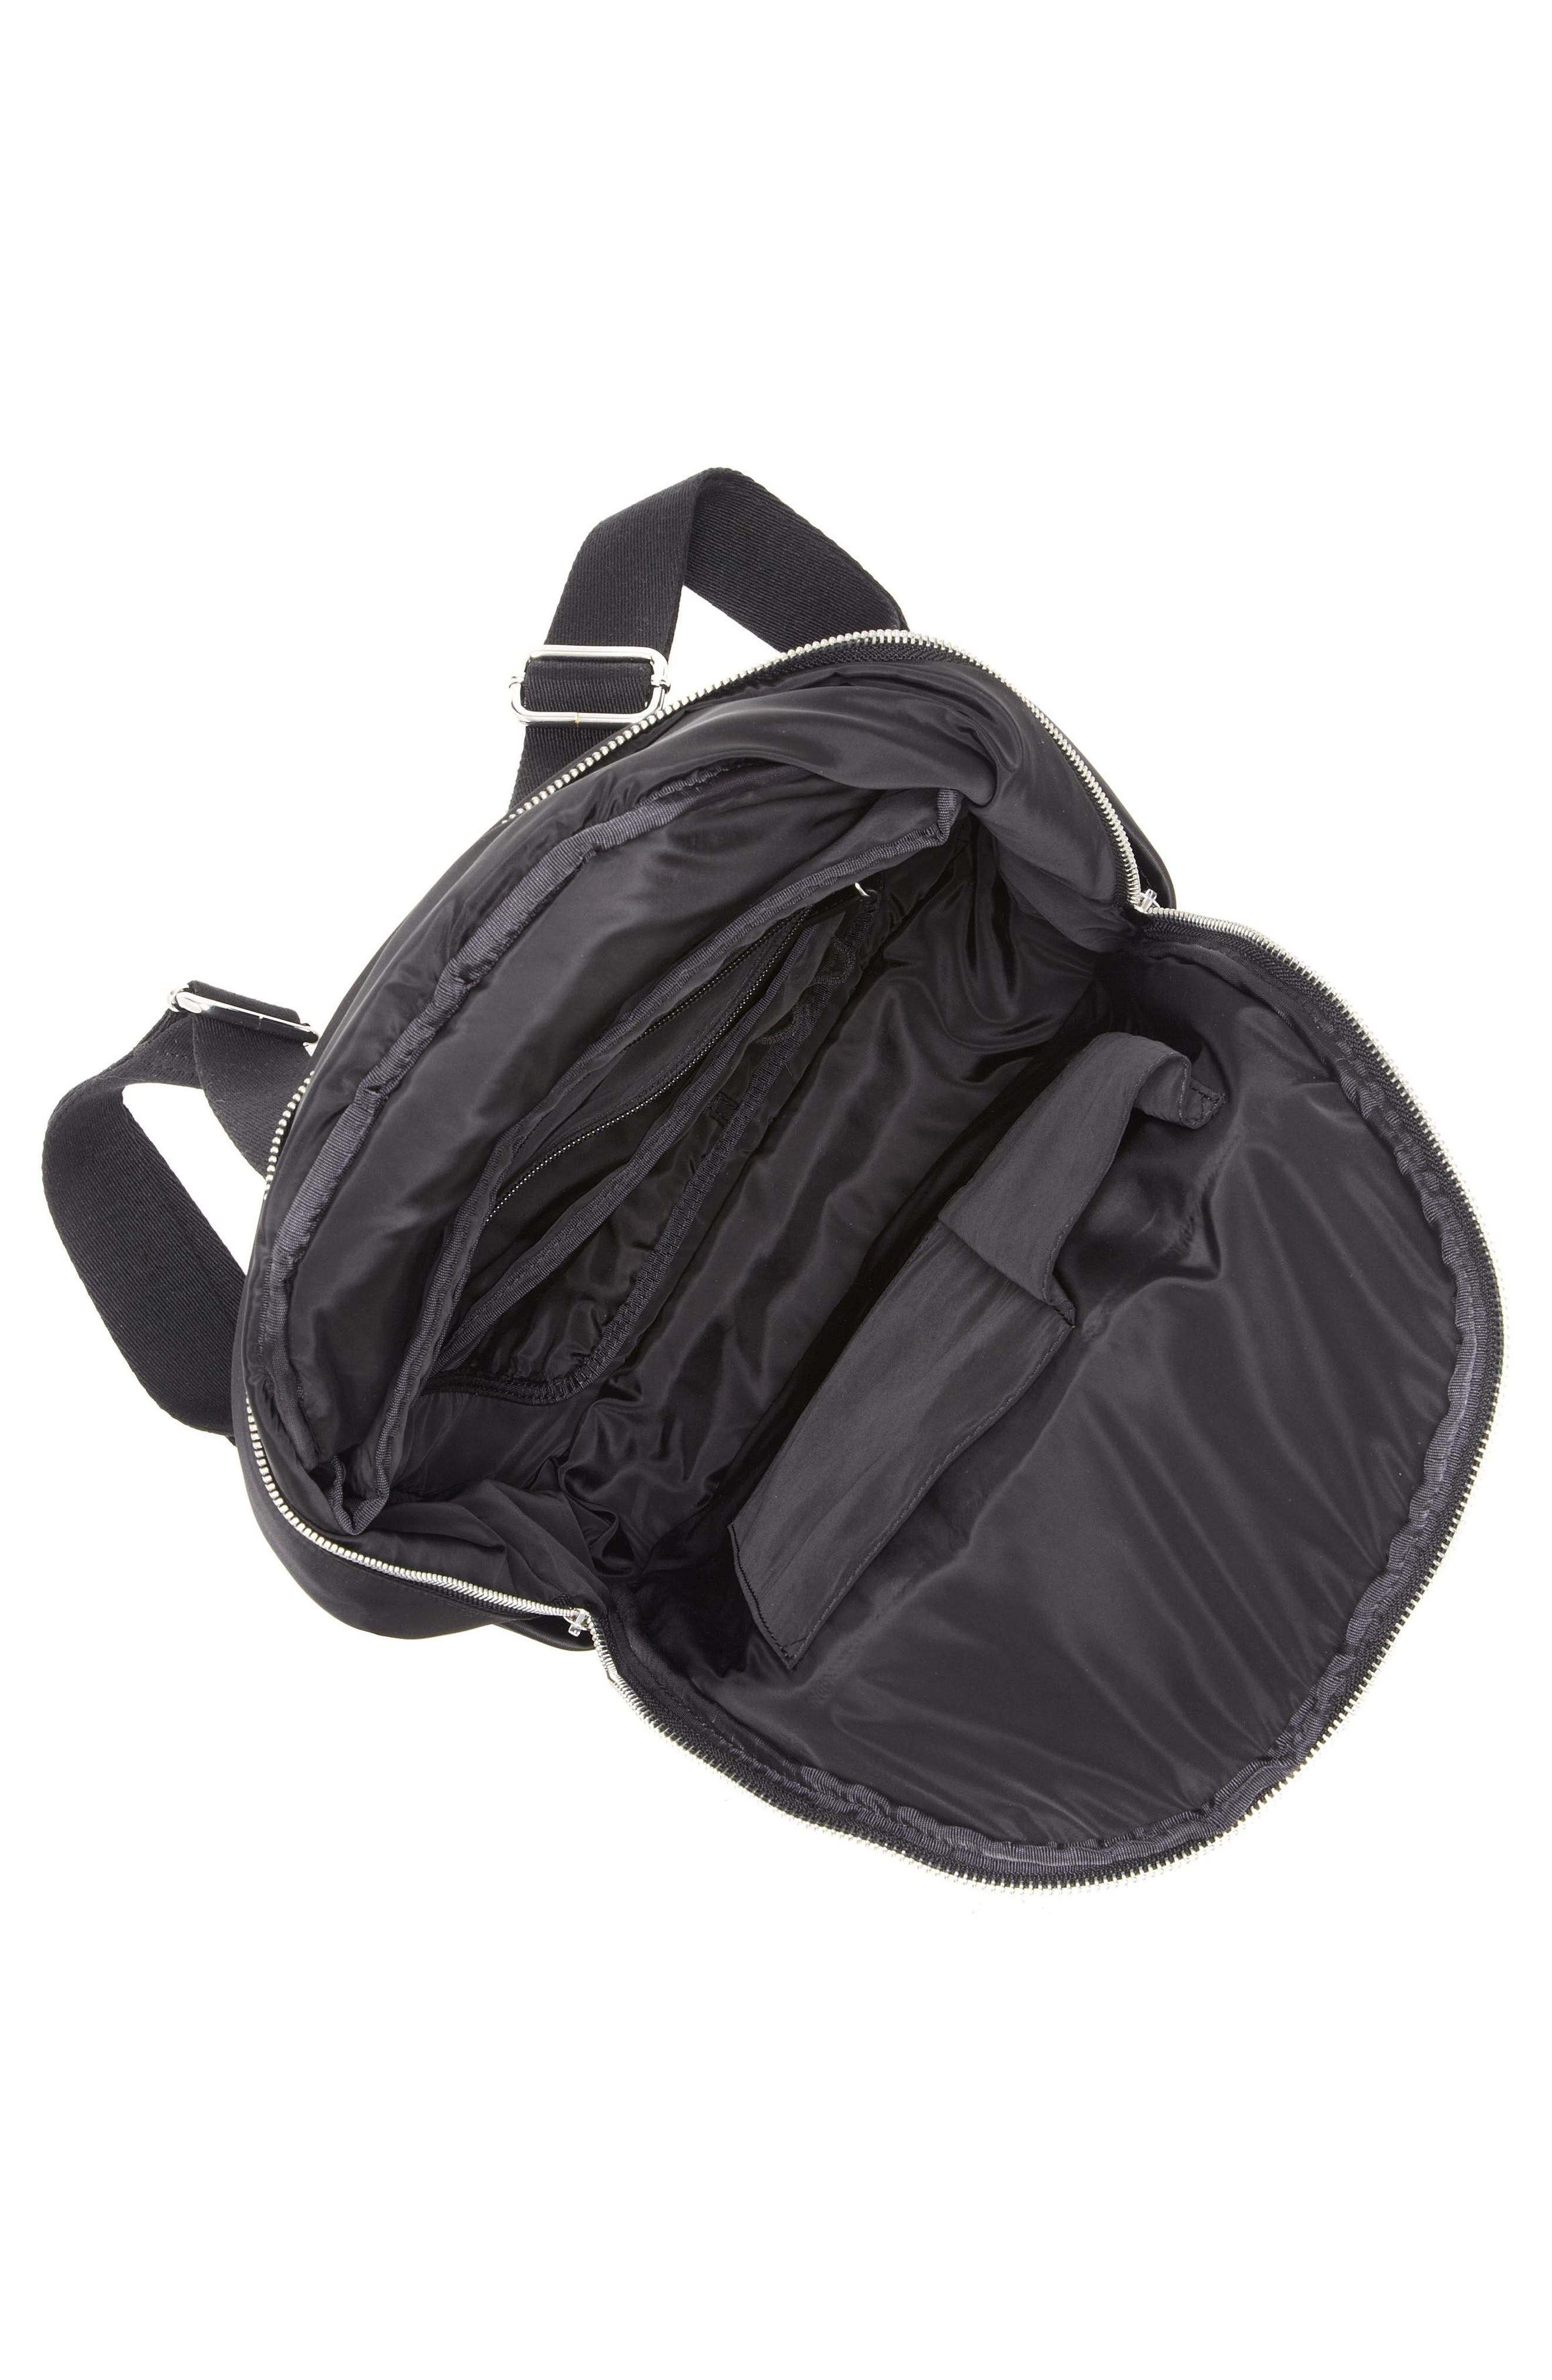 Action Nylon Backpack,                             Alternate thumbnail 3, color,                             001